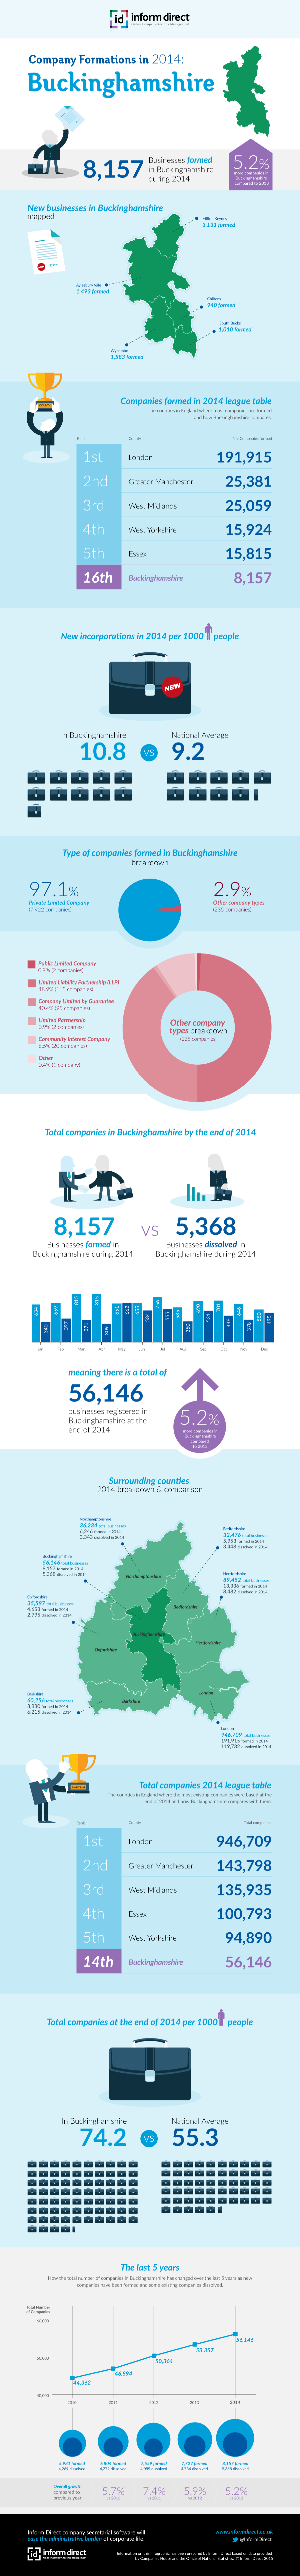 Inform Direct - Company Formations in Buckinghamshire 2014 Infographic